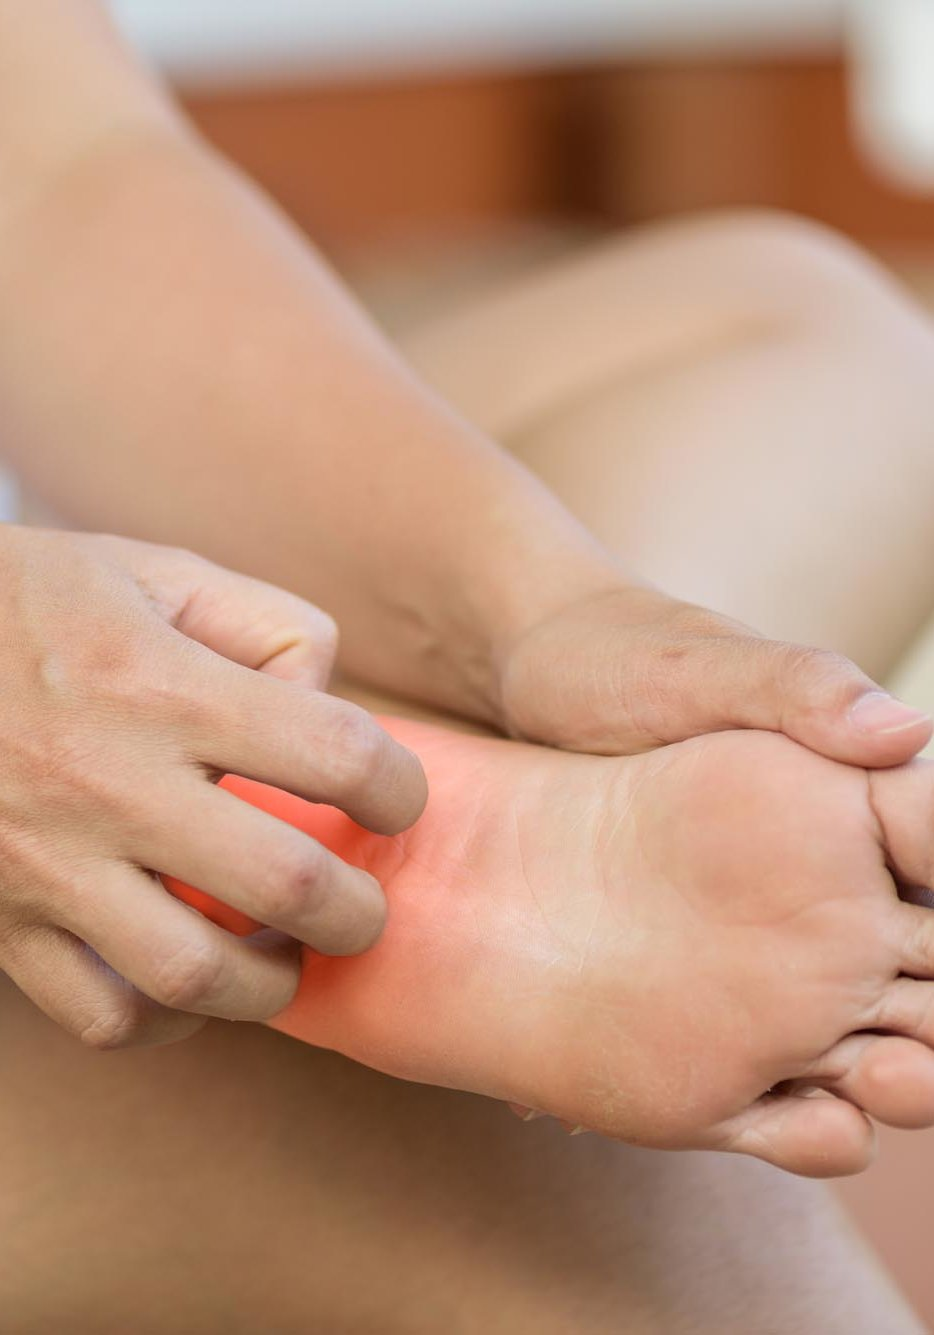 Close up woman foot scratch the itch by hand at home. Healthcare and medical concept.